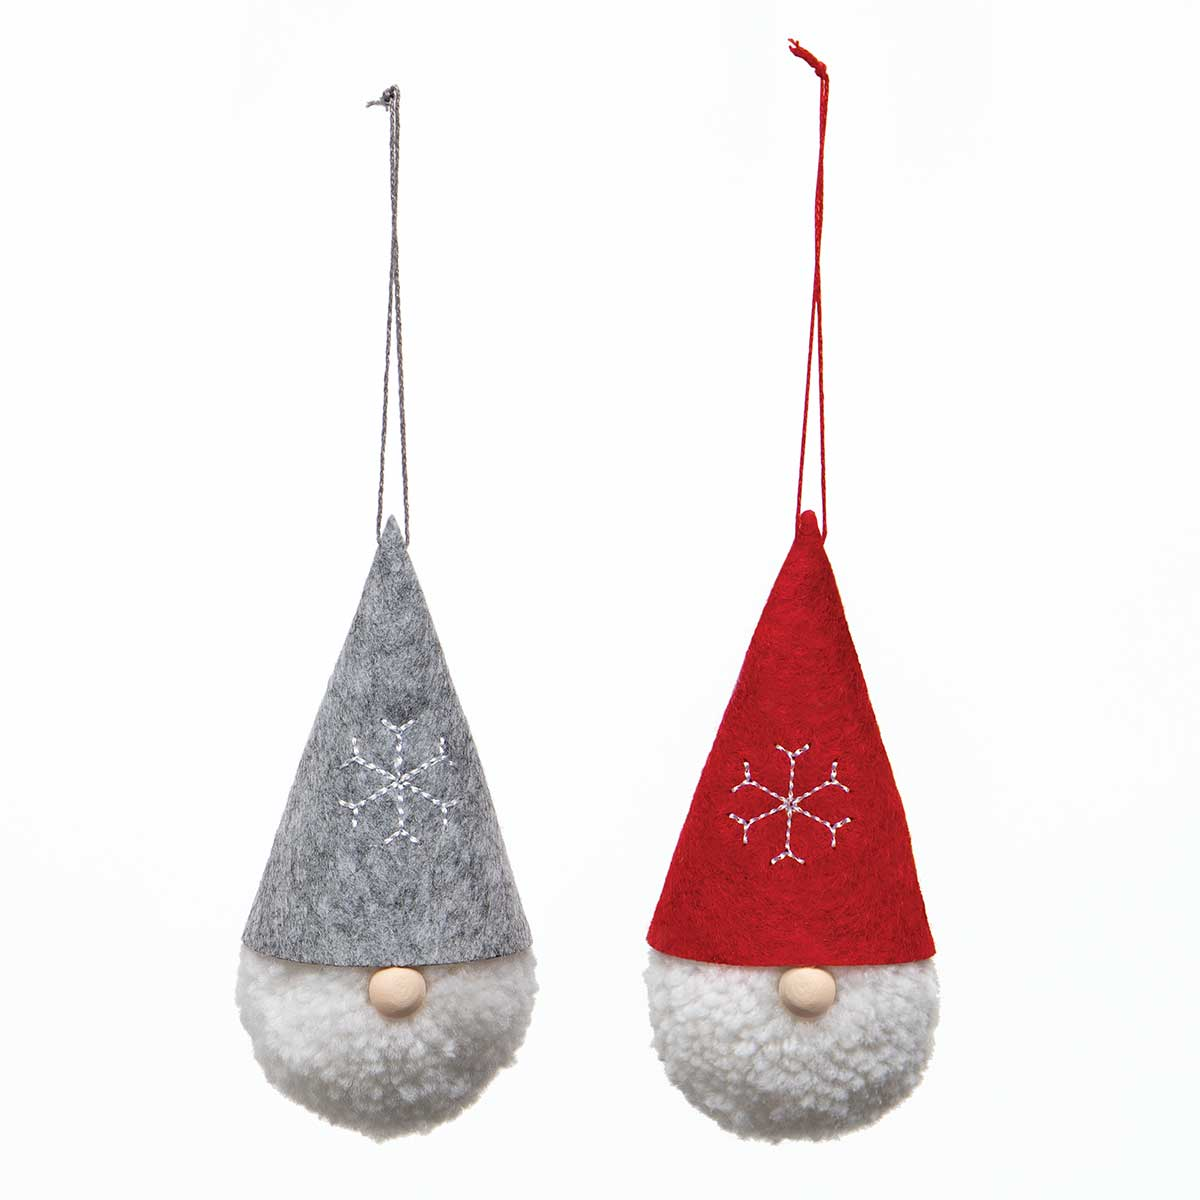 MINI GNOME HEAD ORNAMENT WITH RED/GREY HAT, SNOWFLAKE